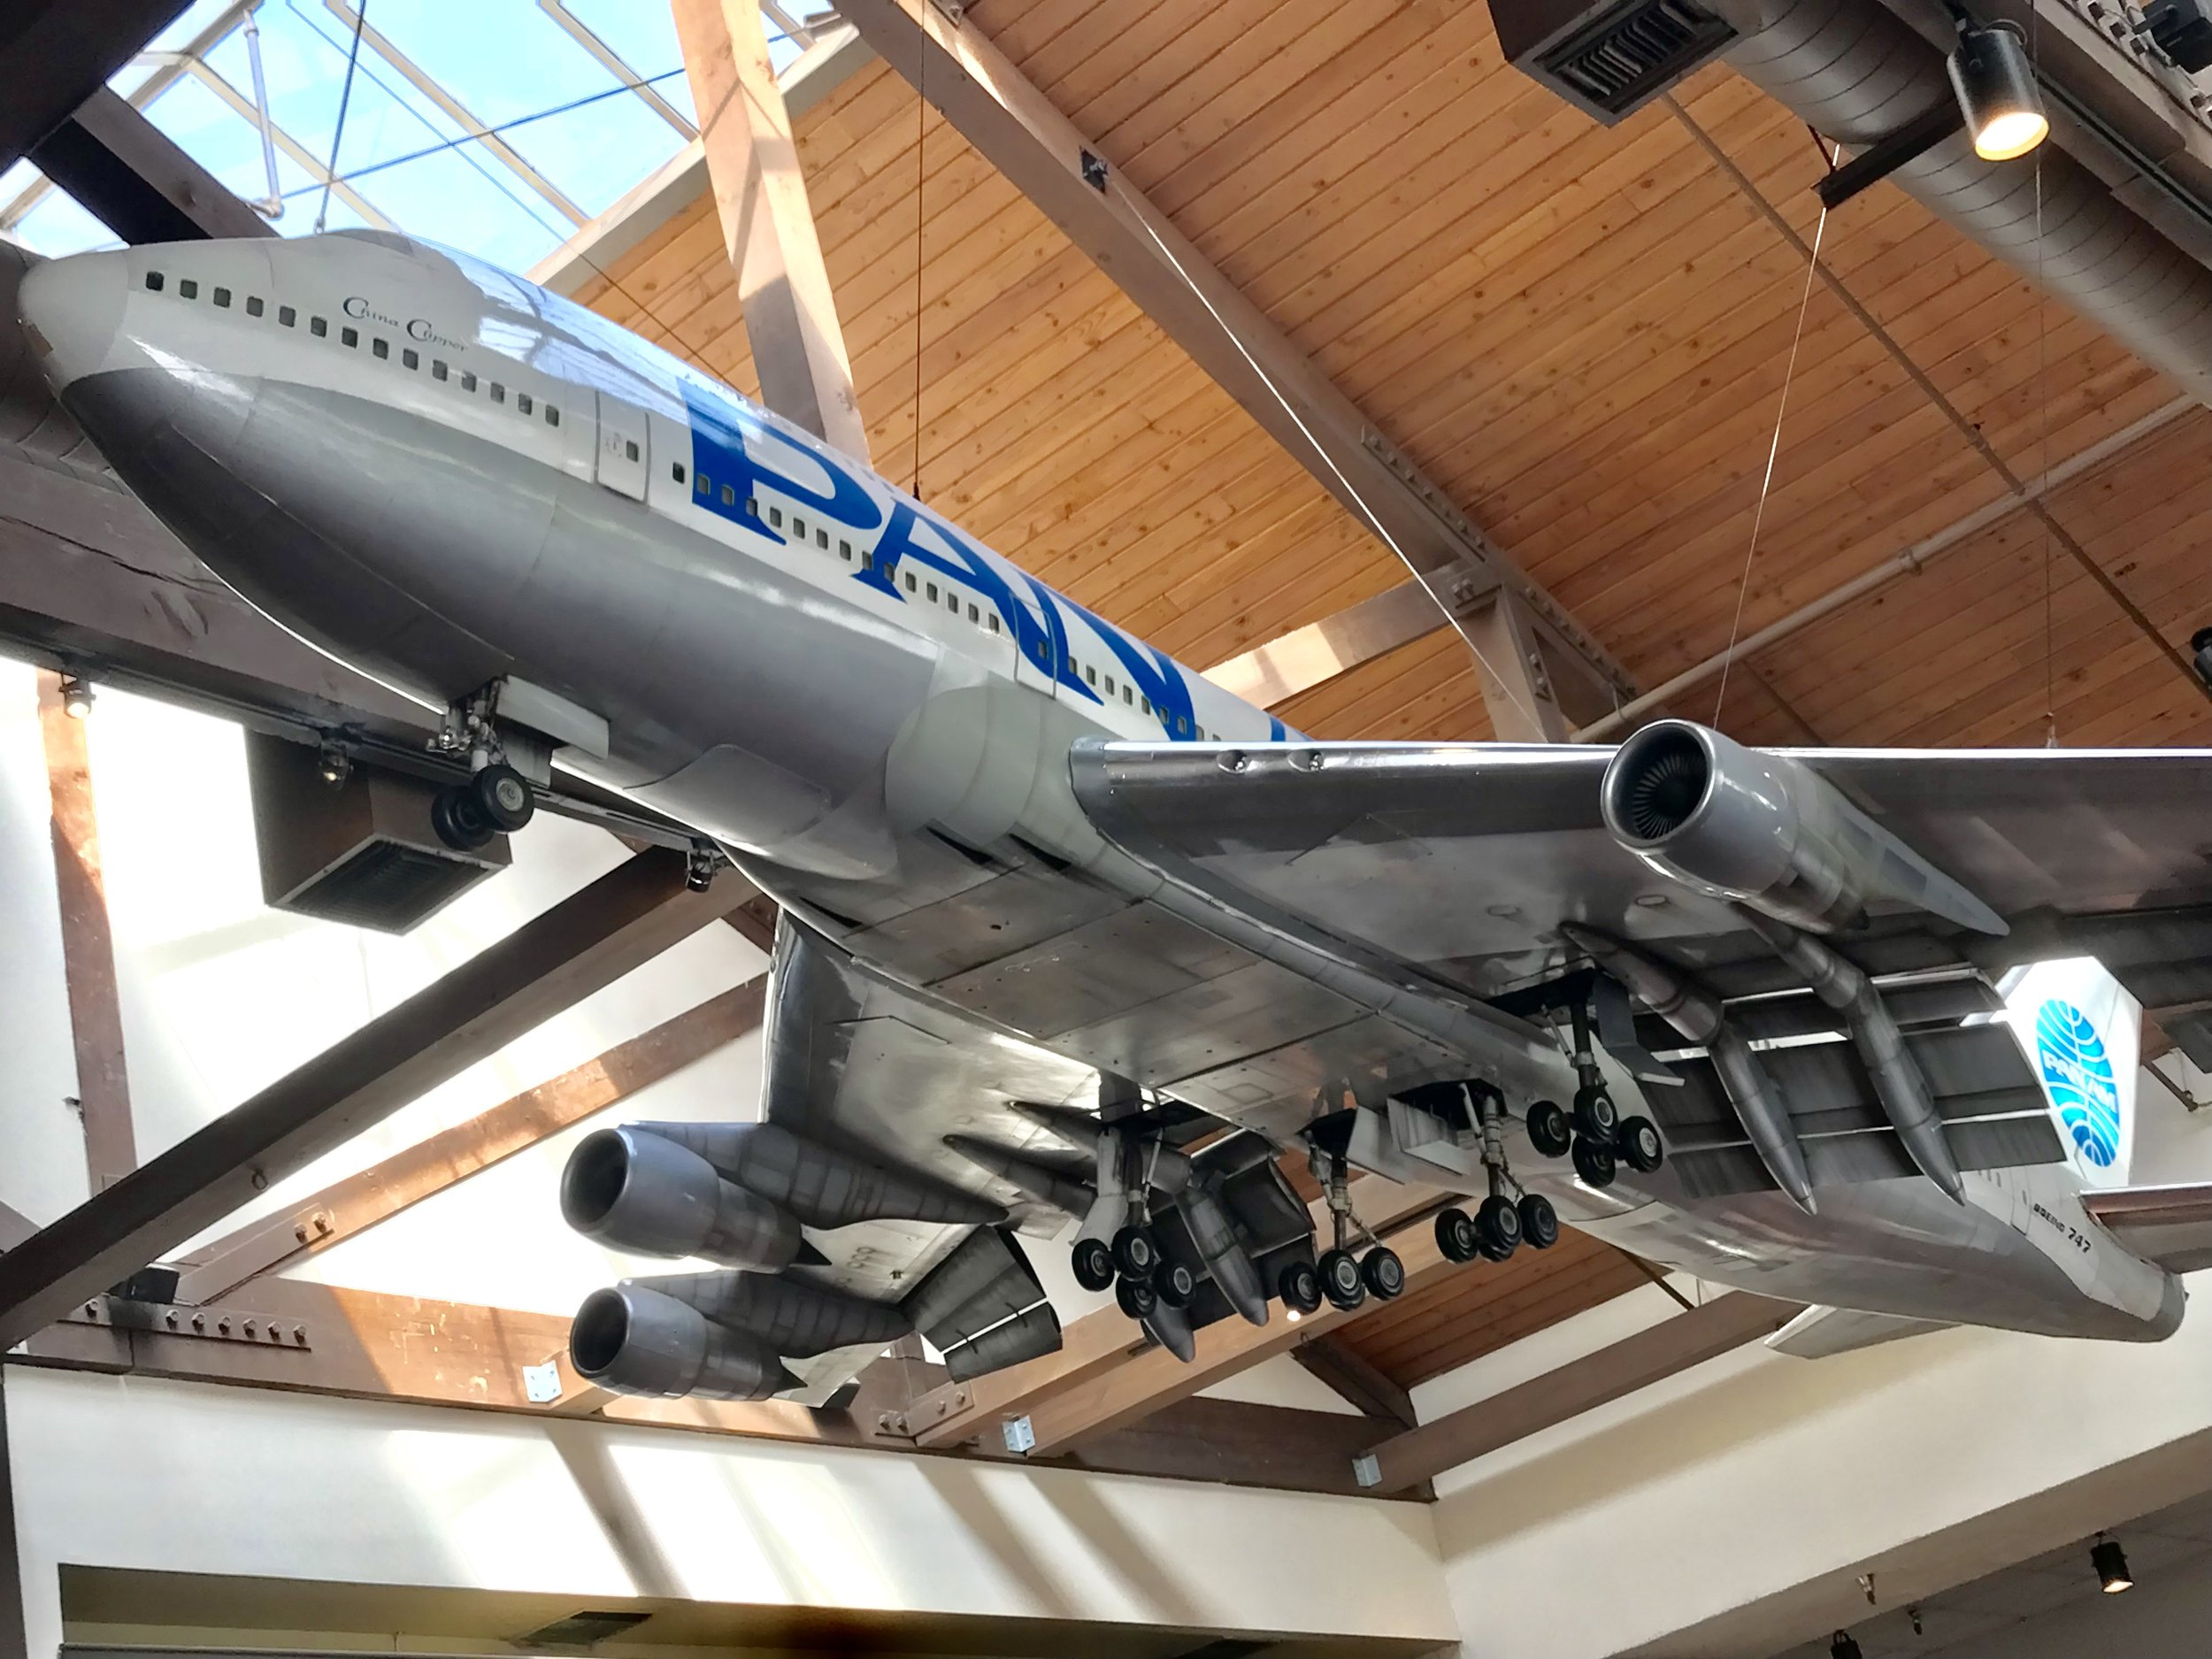 A 747 in the Lobby?